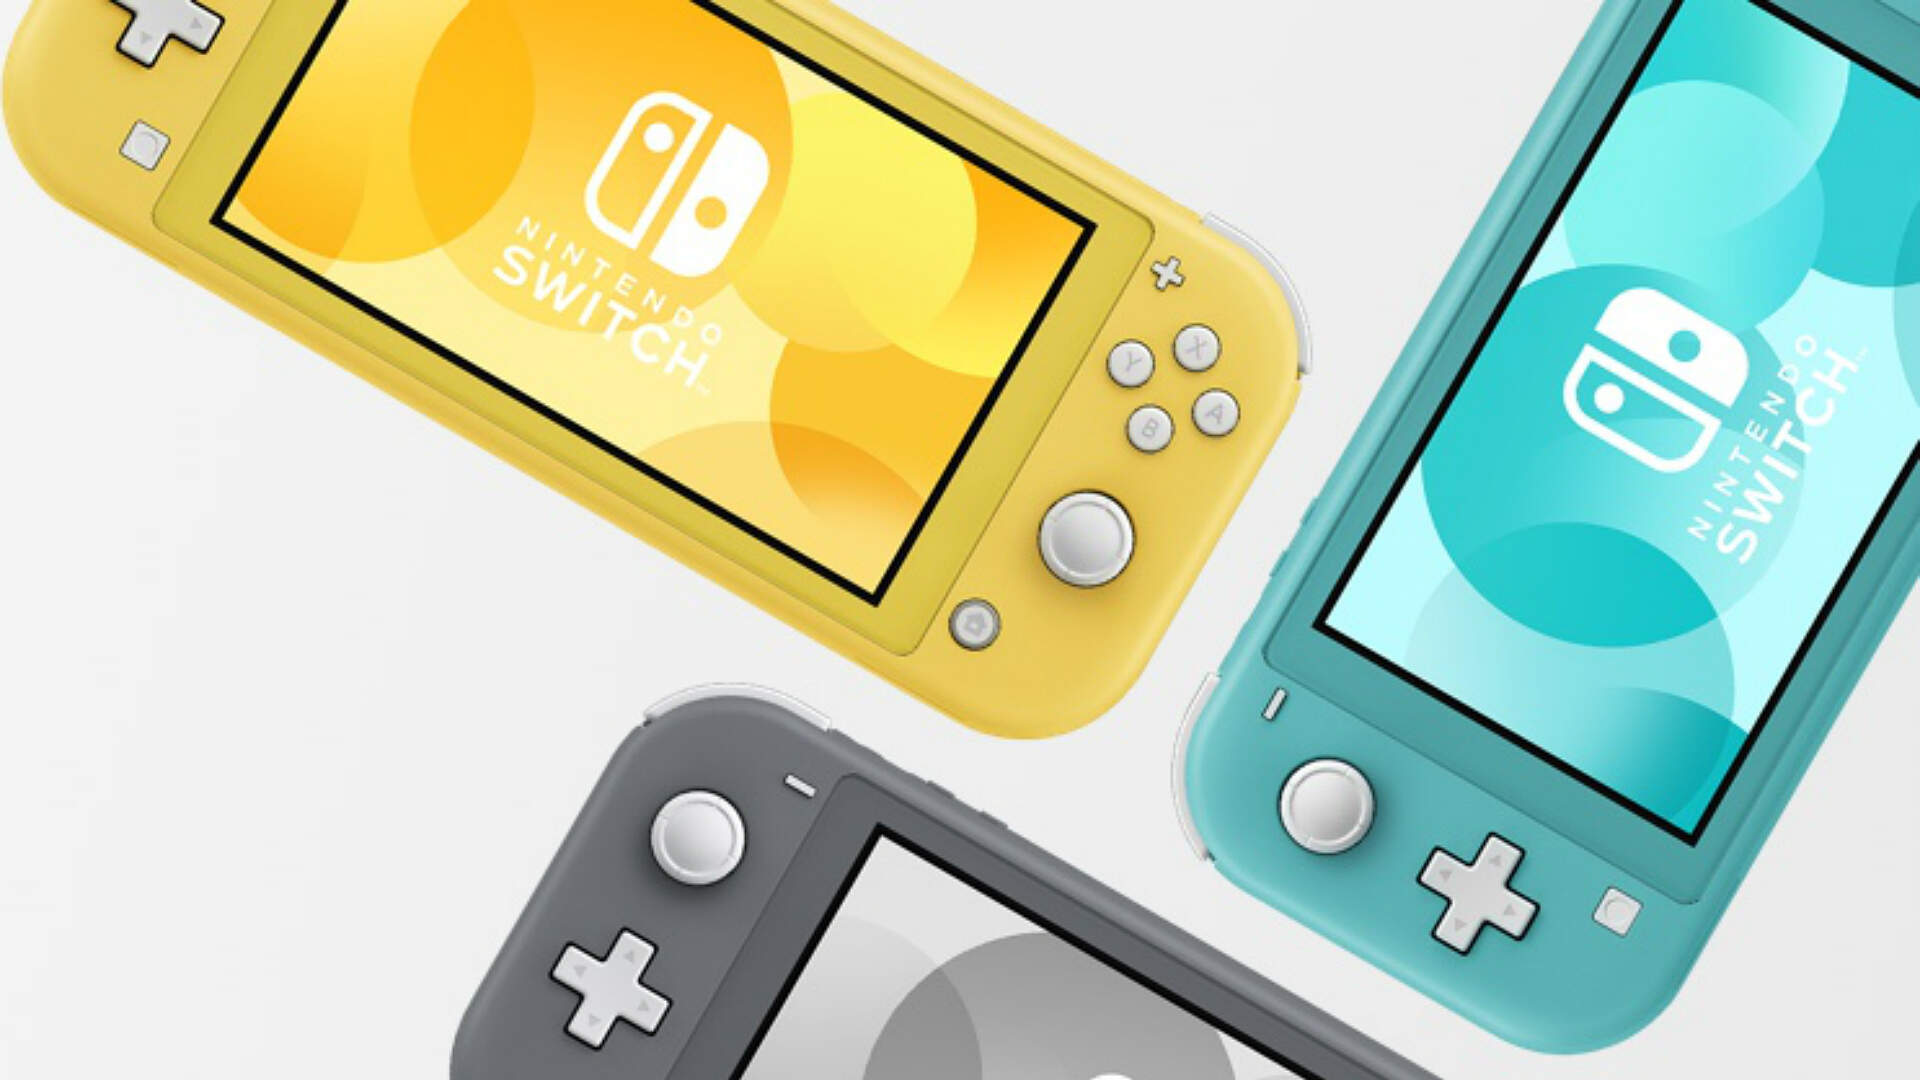 Nintendo's July Mini Direct: What to Expect From the Third-Party Presentation